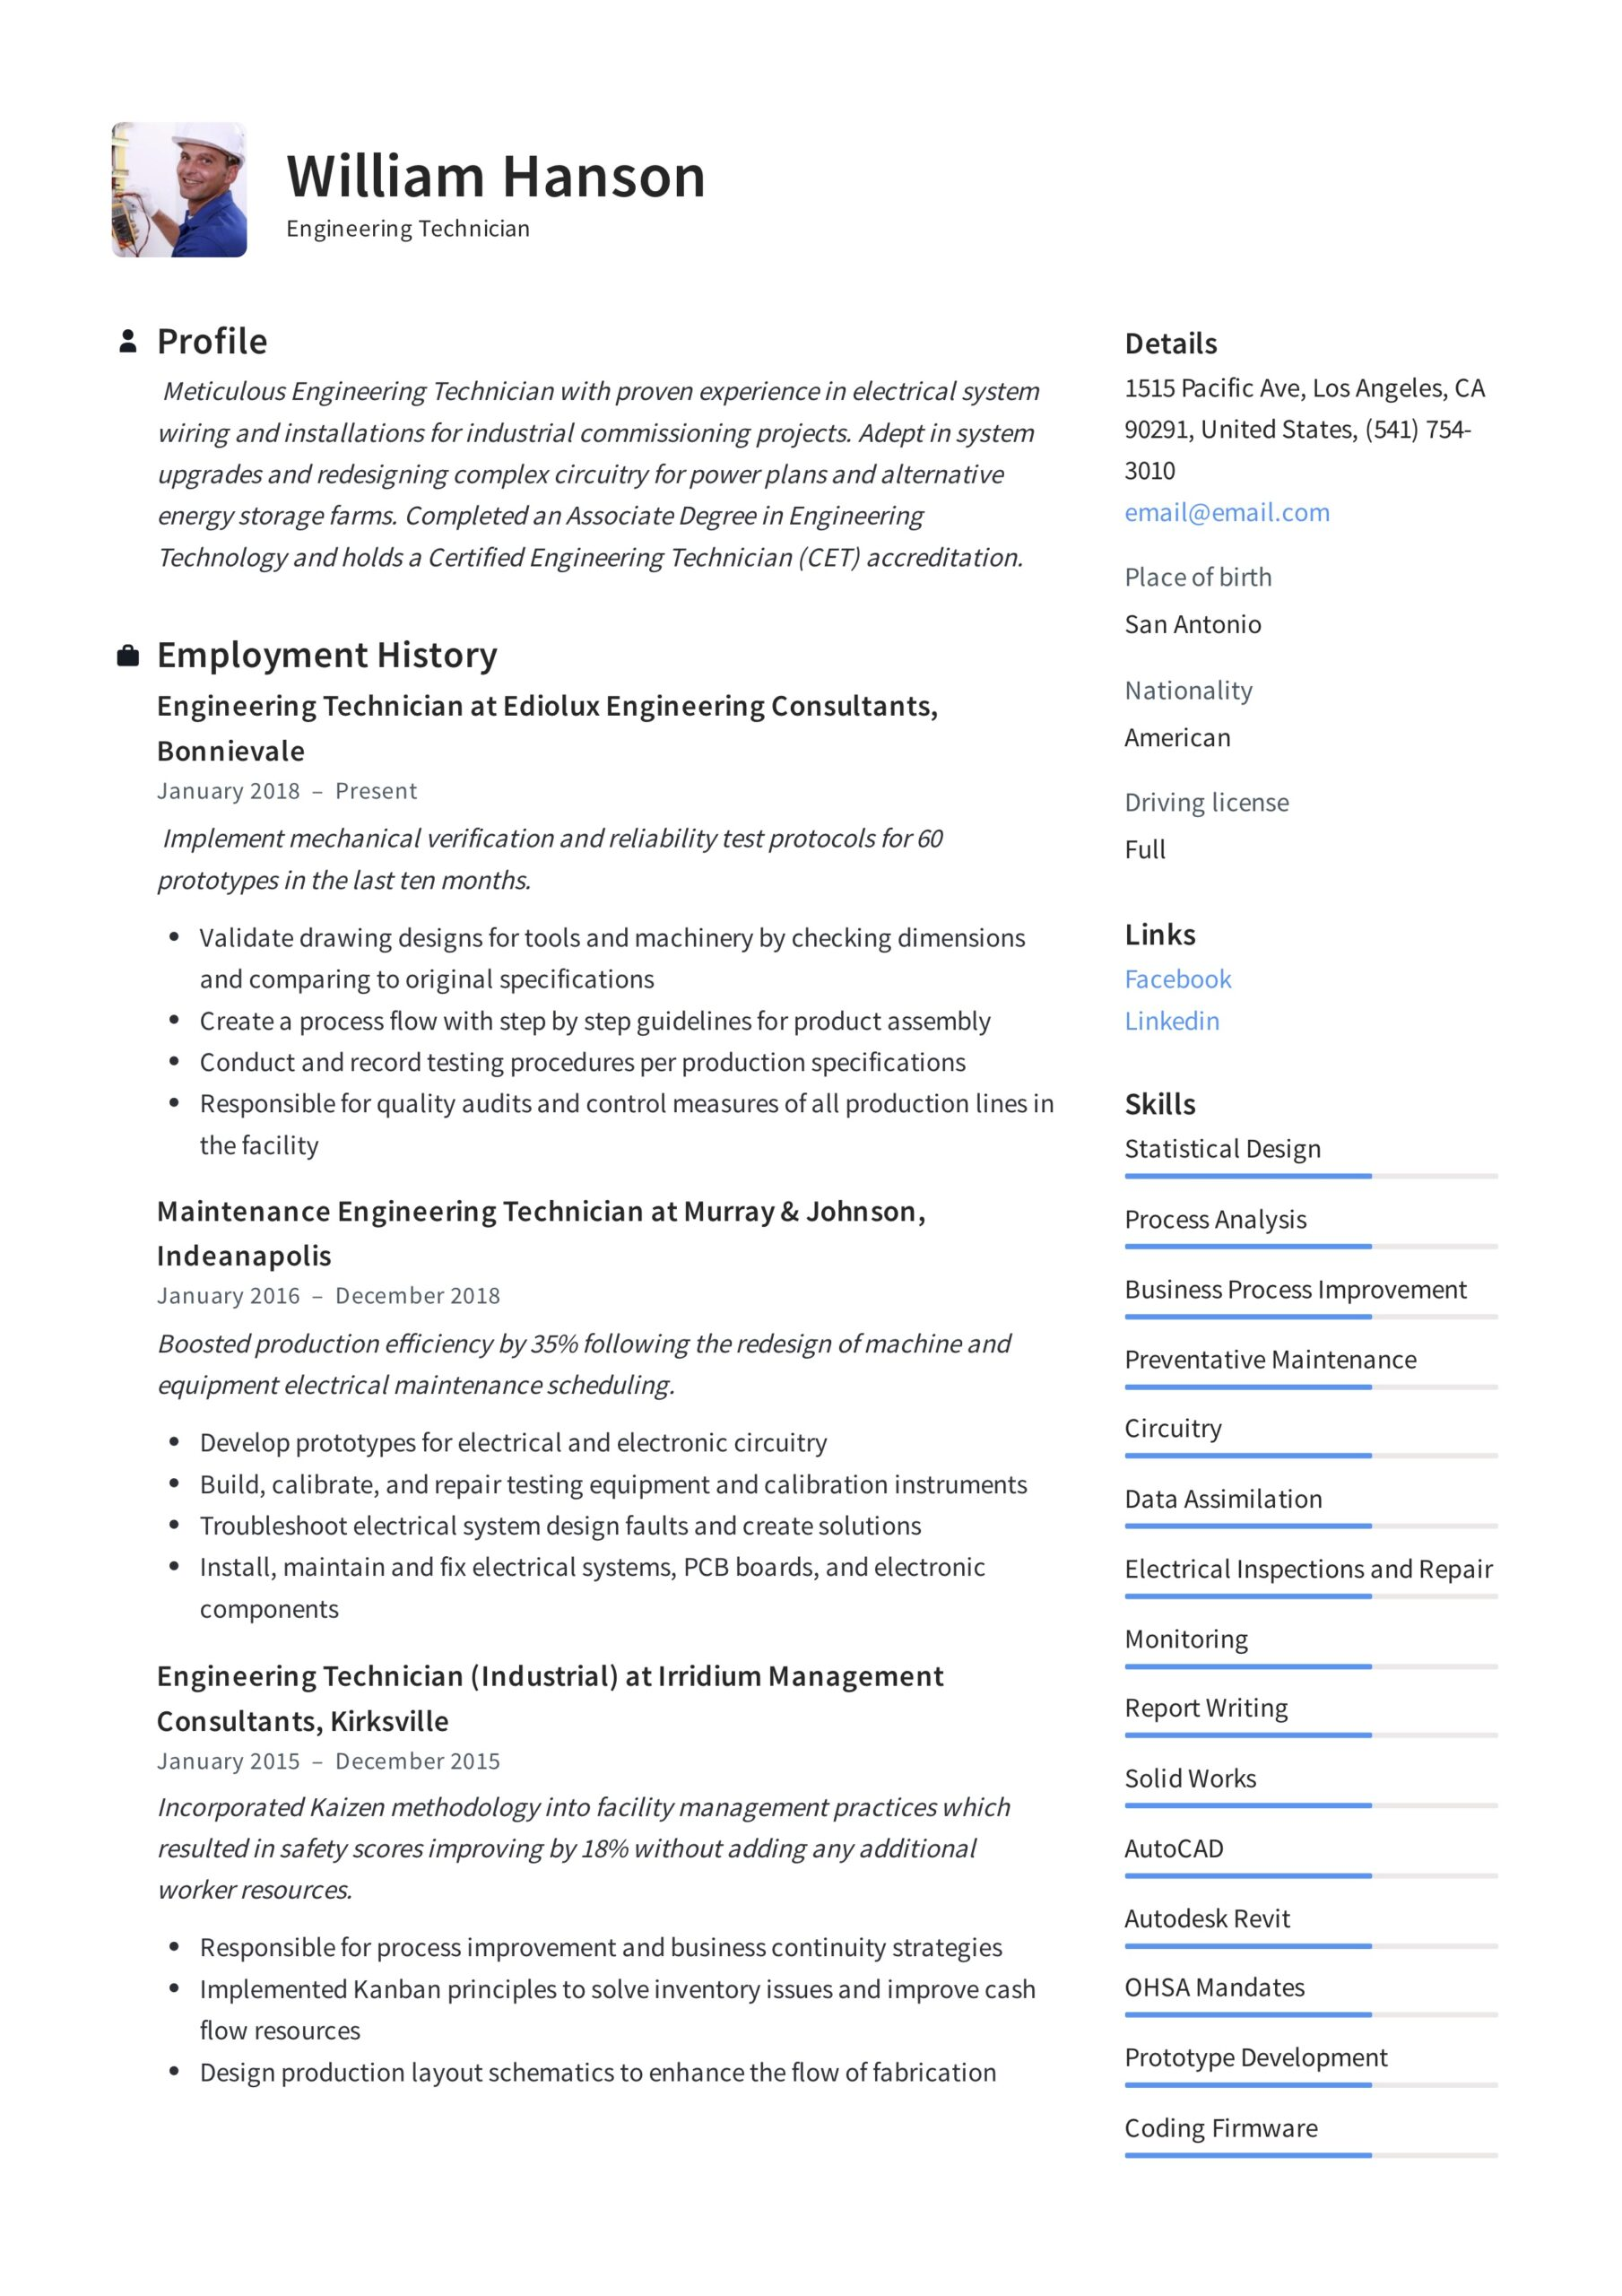 engineering technician resume writing guide templates oil and gas electrical editing Resume Oil And Gas Electrical Technician Resume